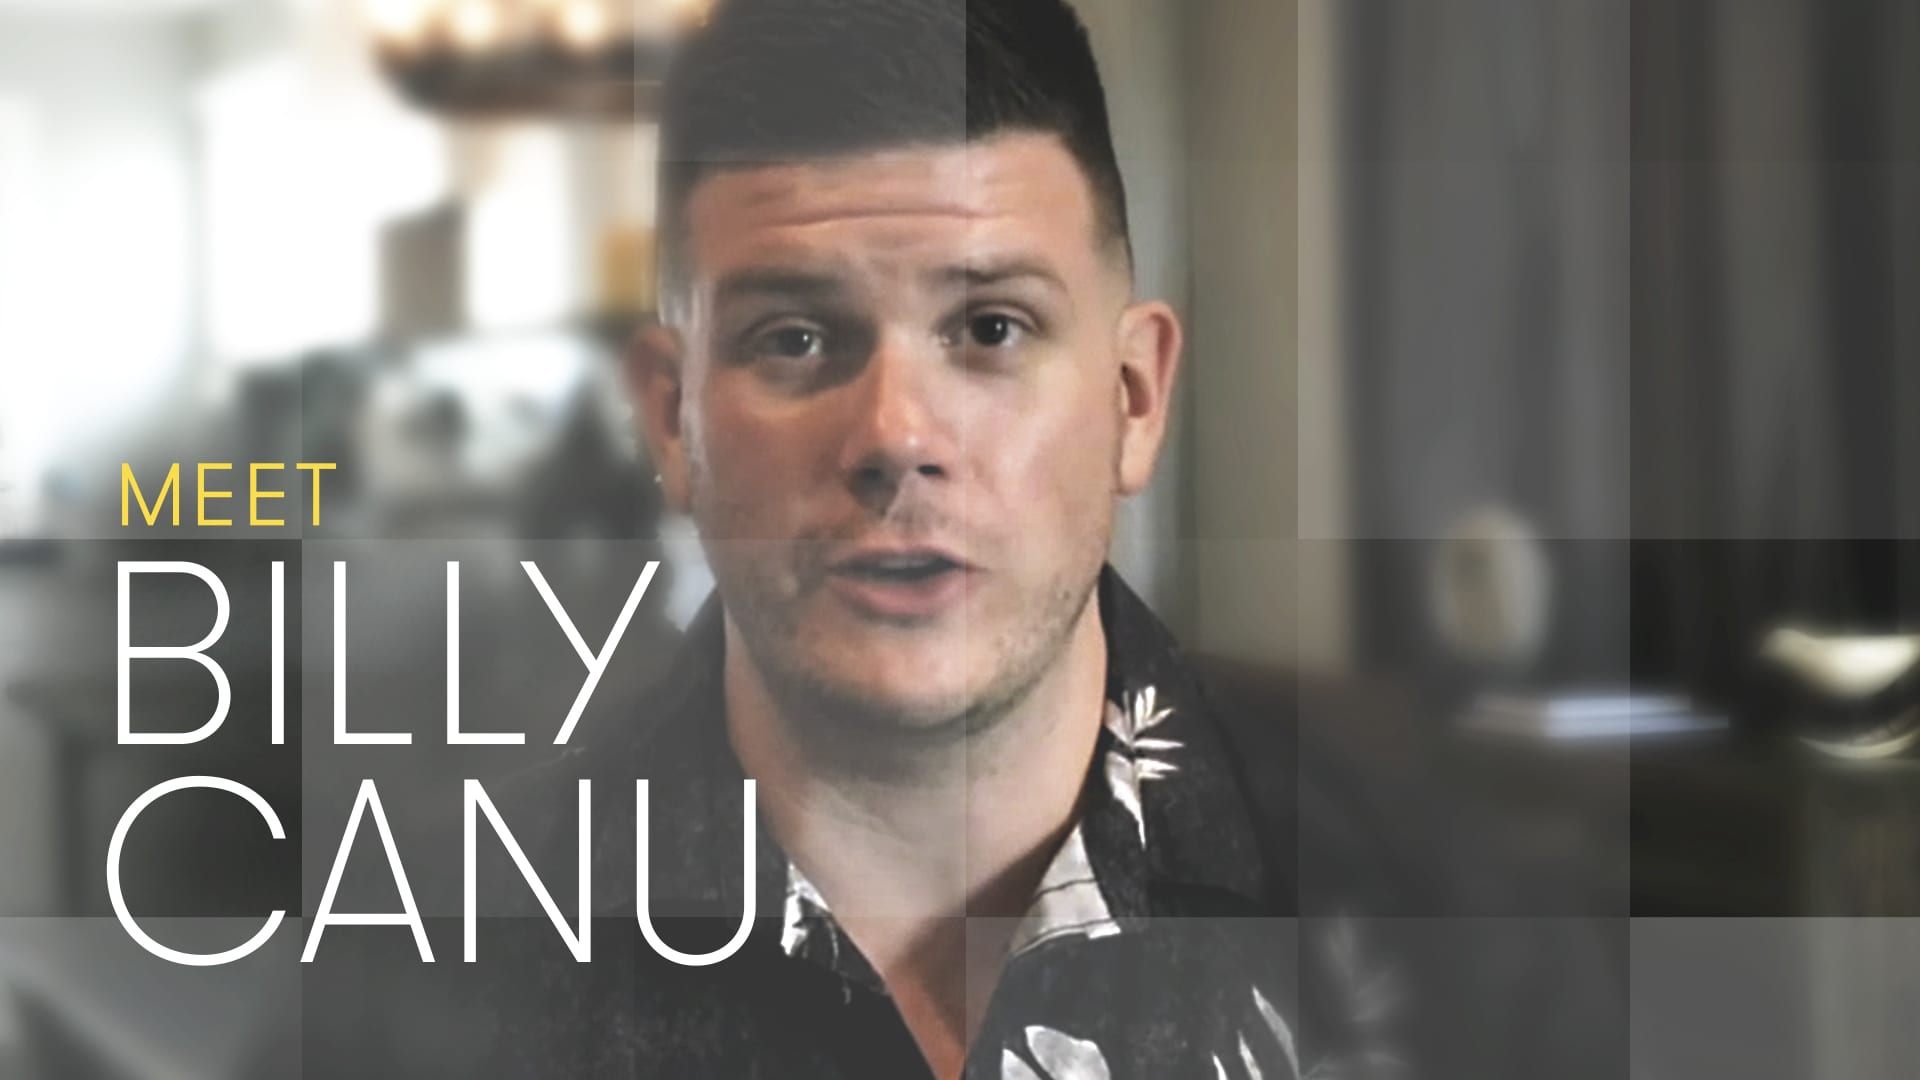 The Partner contestant Billy Canu